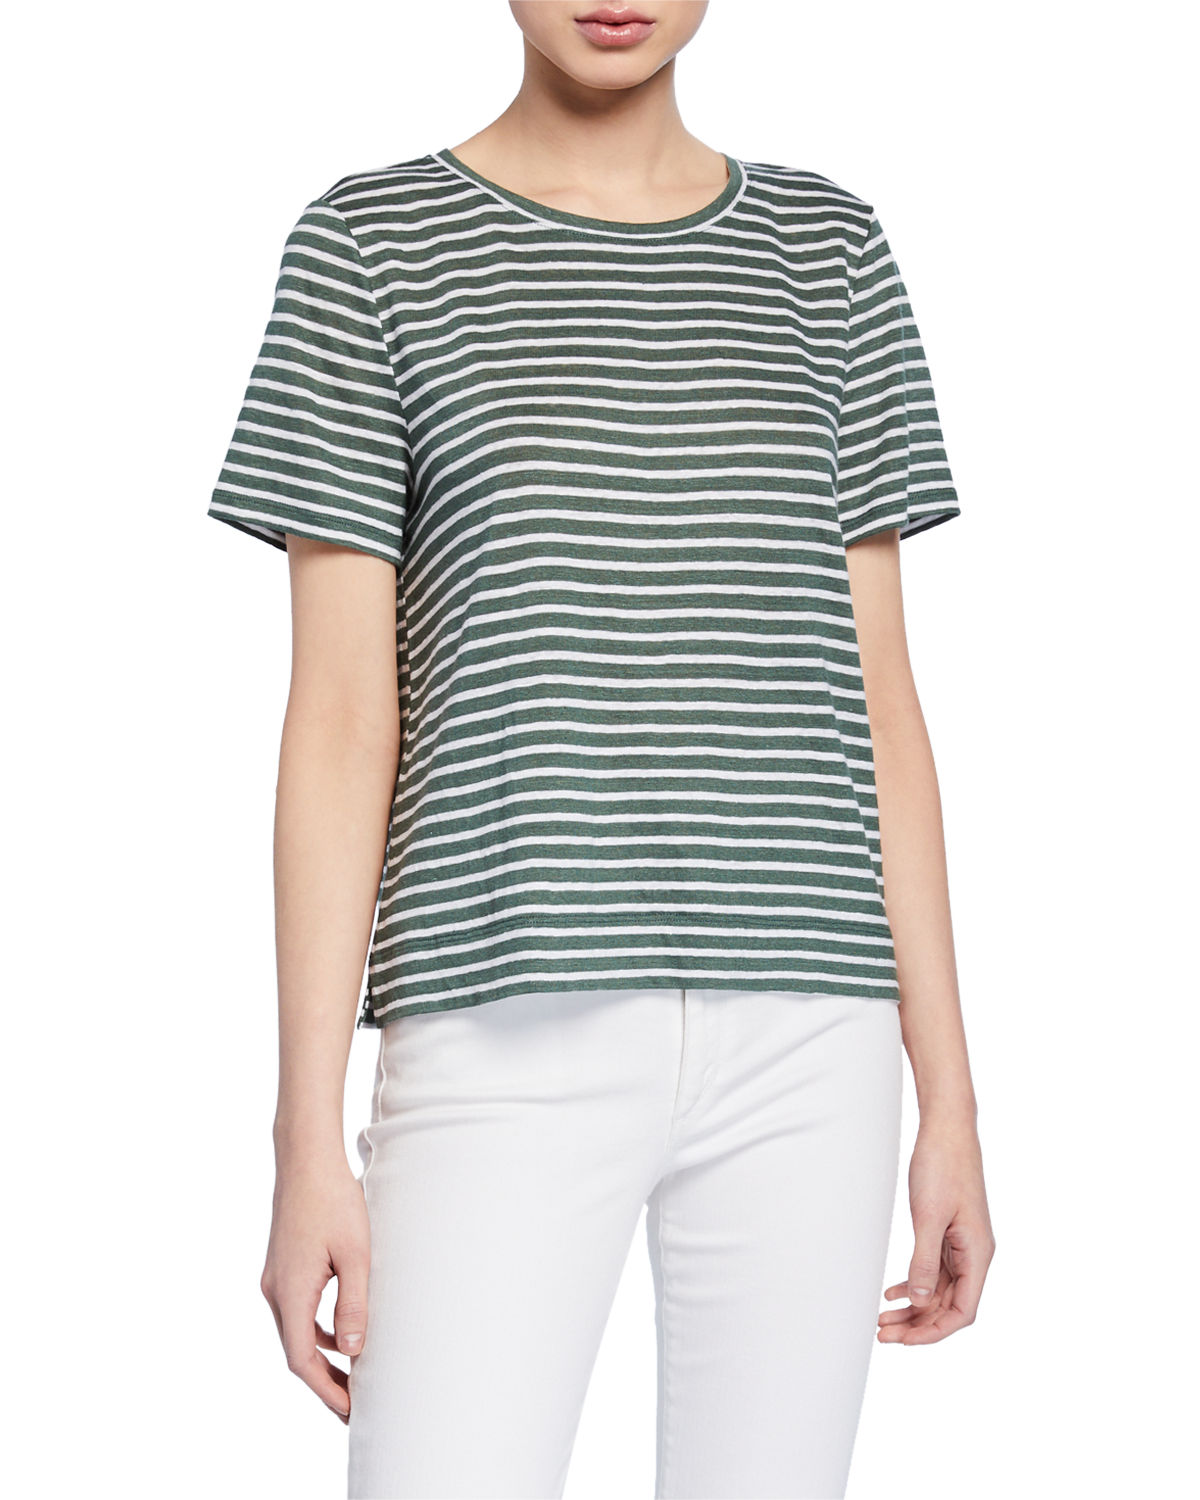 Eileen Fisher Tops PLUS SIZE STRIPED ORGANIC LINEN JERSEY CAP-SLEEVE TEE